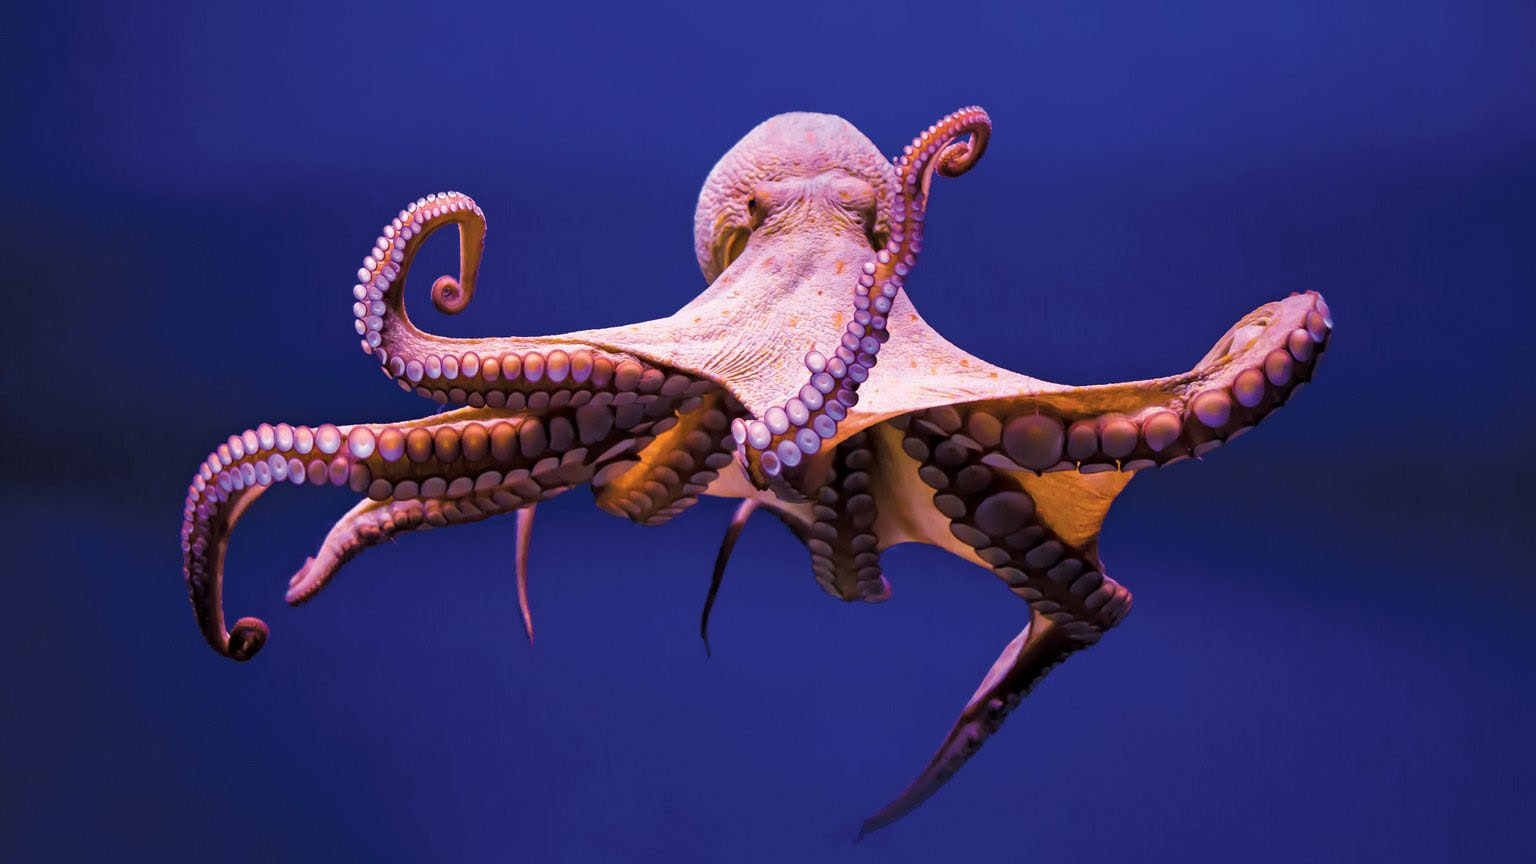 Weekend Round-Up: Smart Octopuses, A Lego Super Car, And Over-The-Top Sushi hero